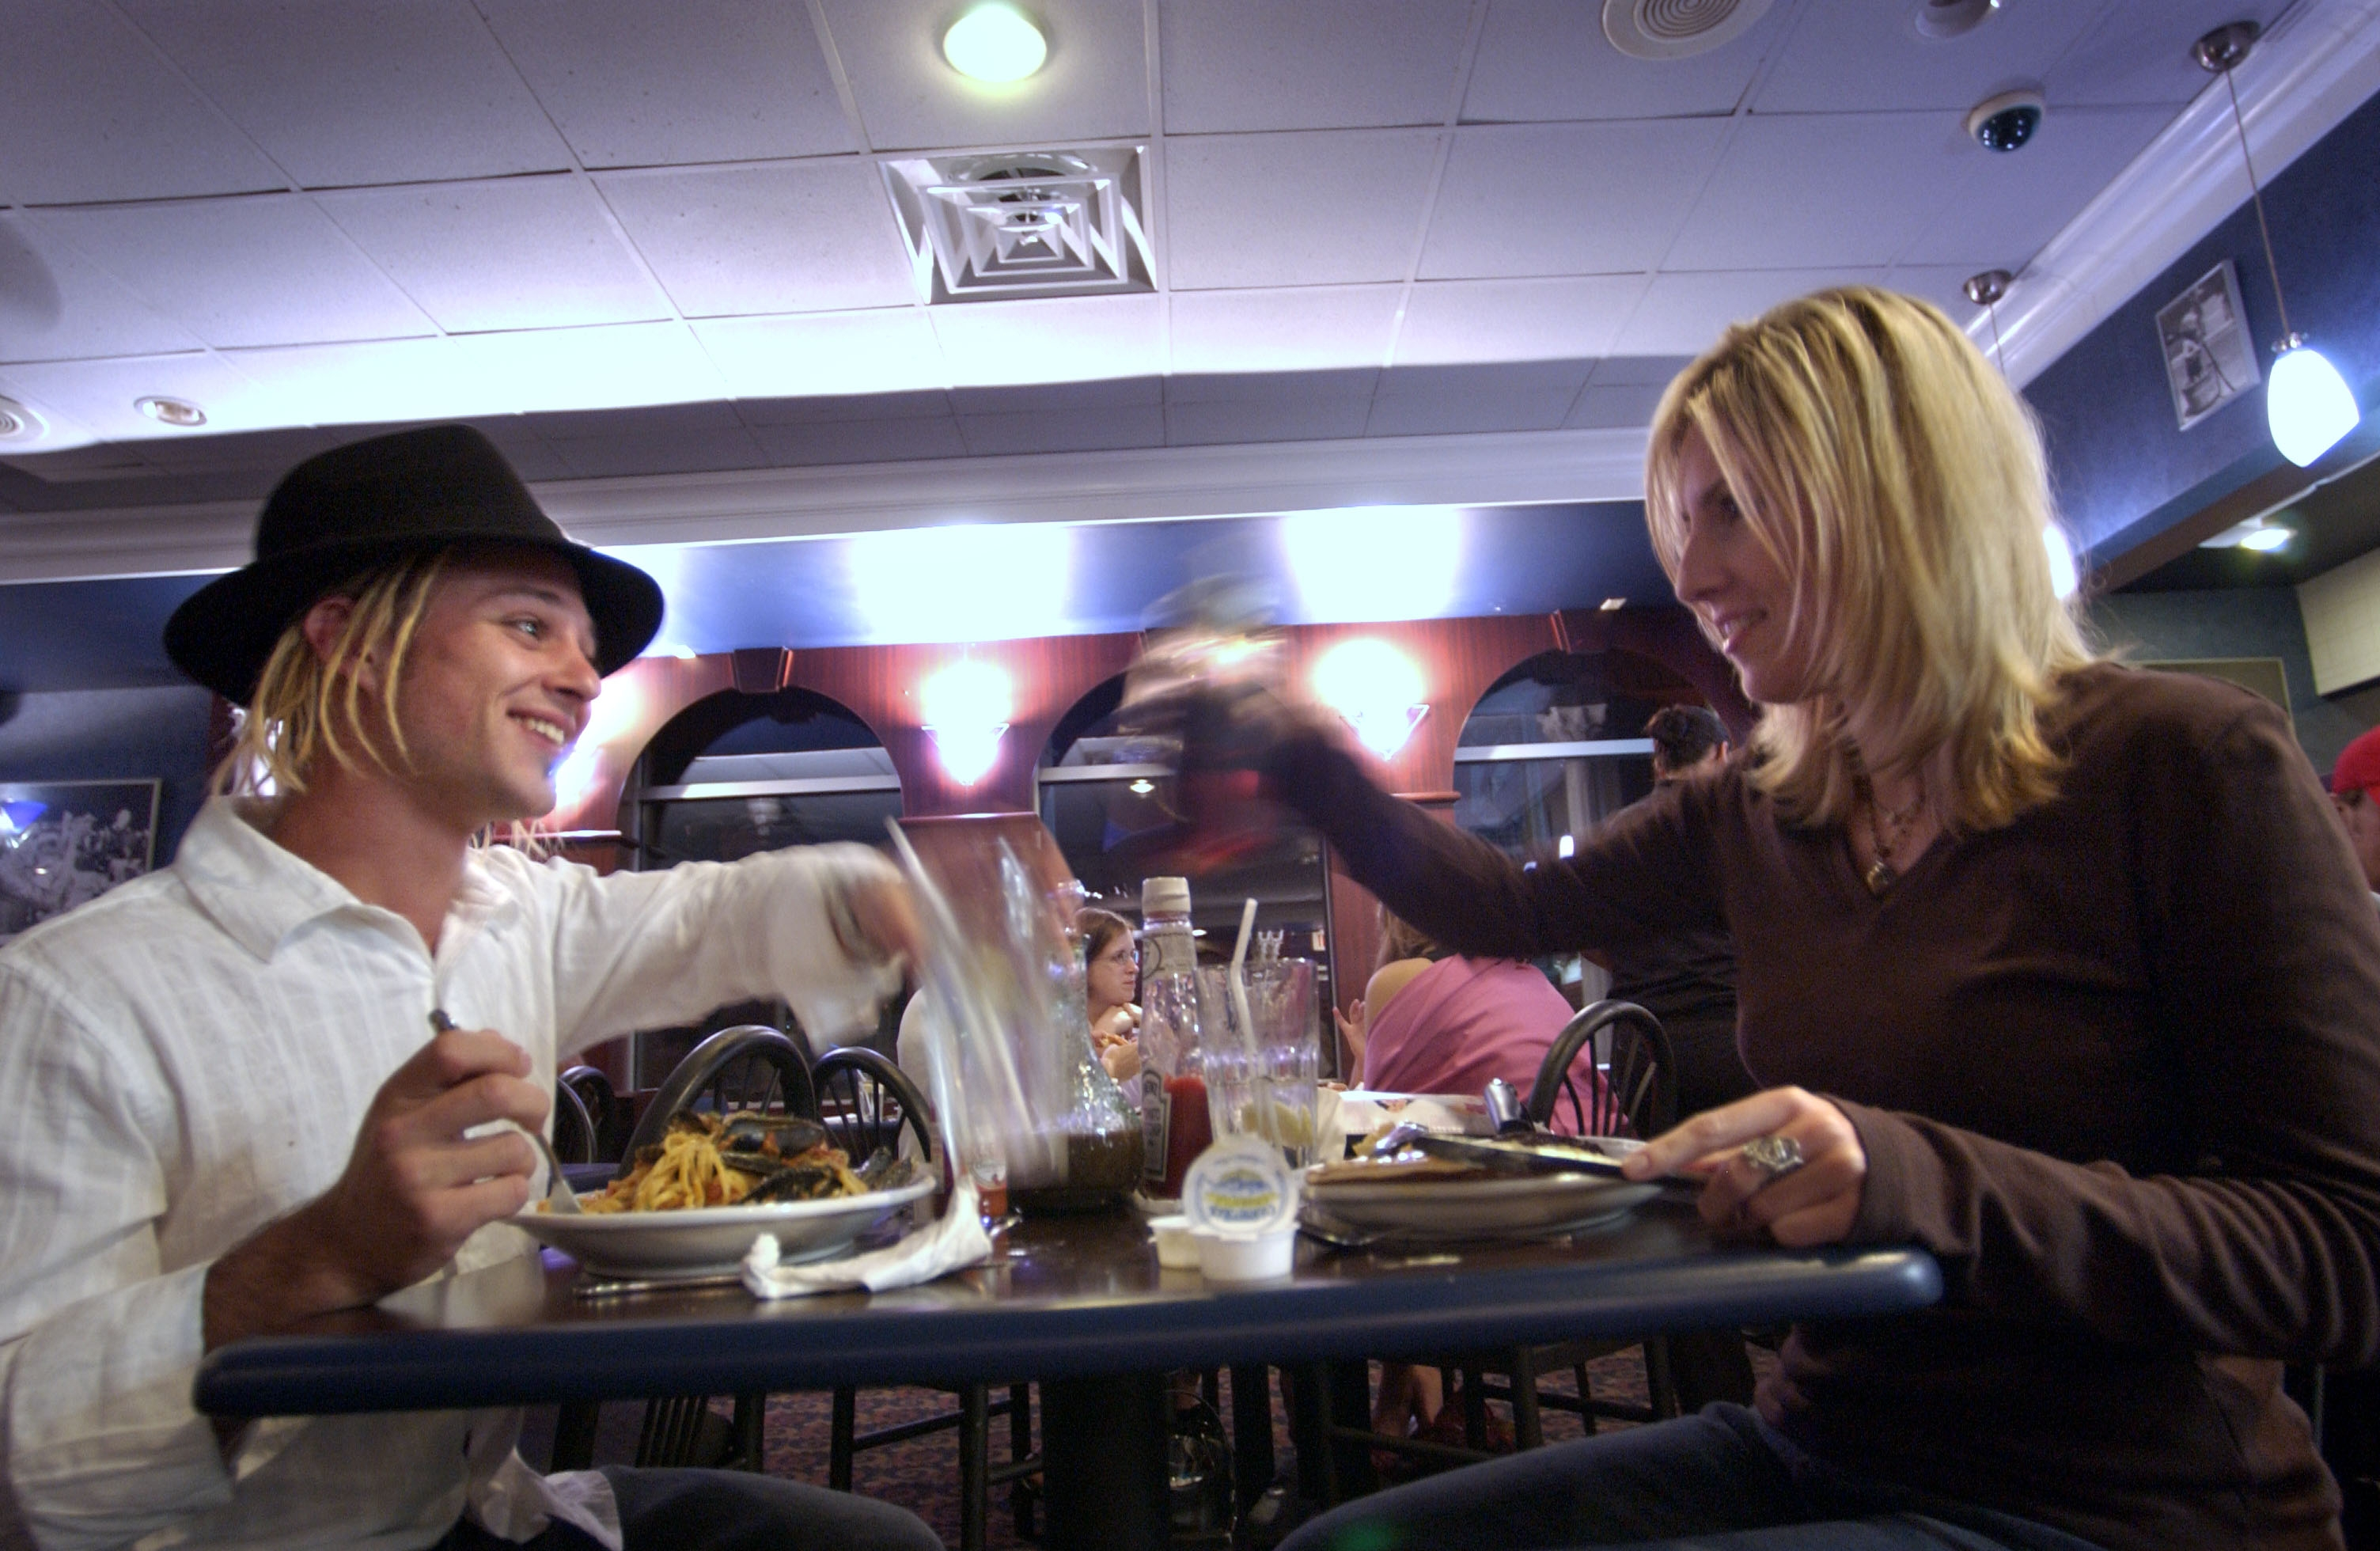 Late-night diners at Pano's on Elmwood Avenue.  Pano's used to be open all night but now is open 7 a.m. to 11 p.m. Sunday through Thursday and until midnight Fridays and Saturdays. (News file photo)